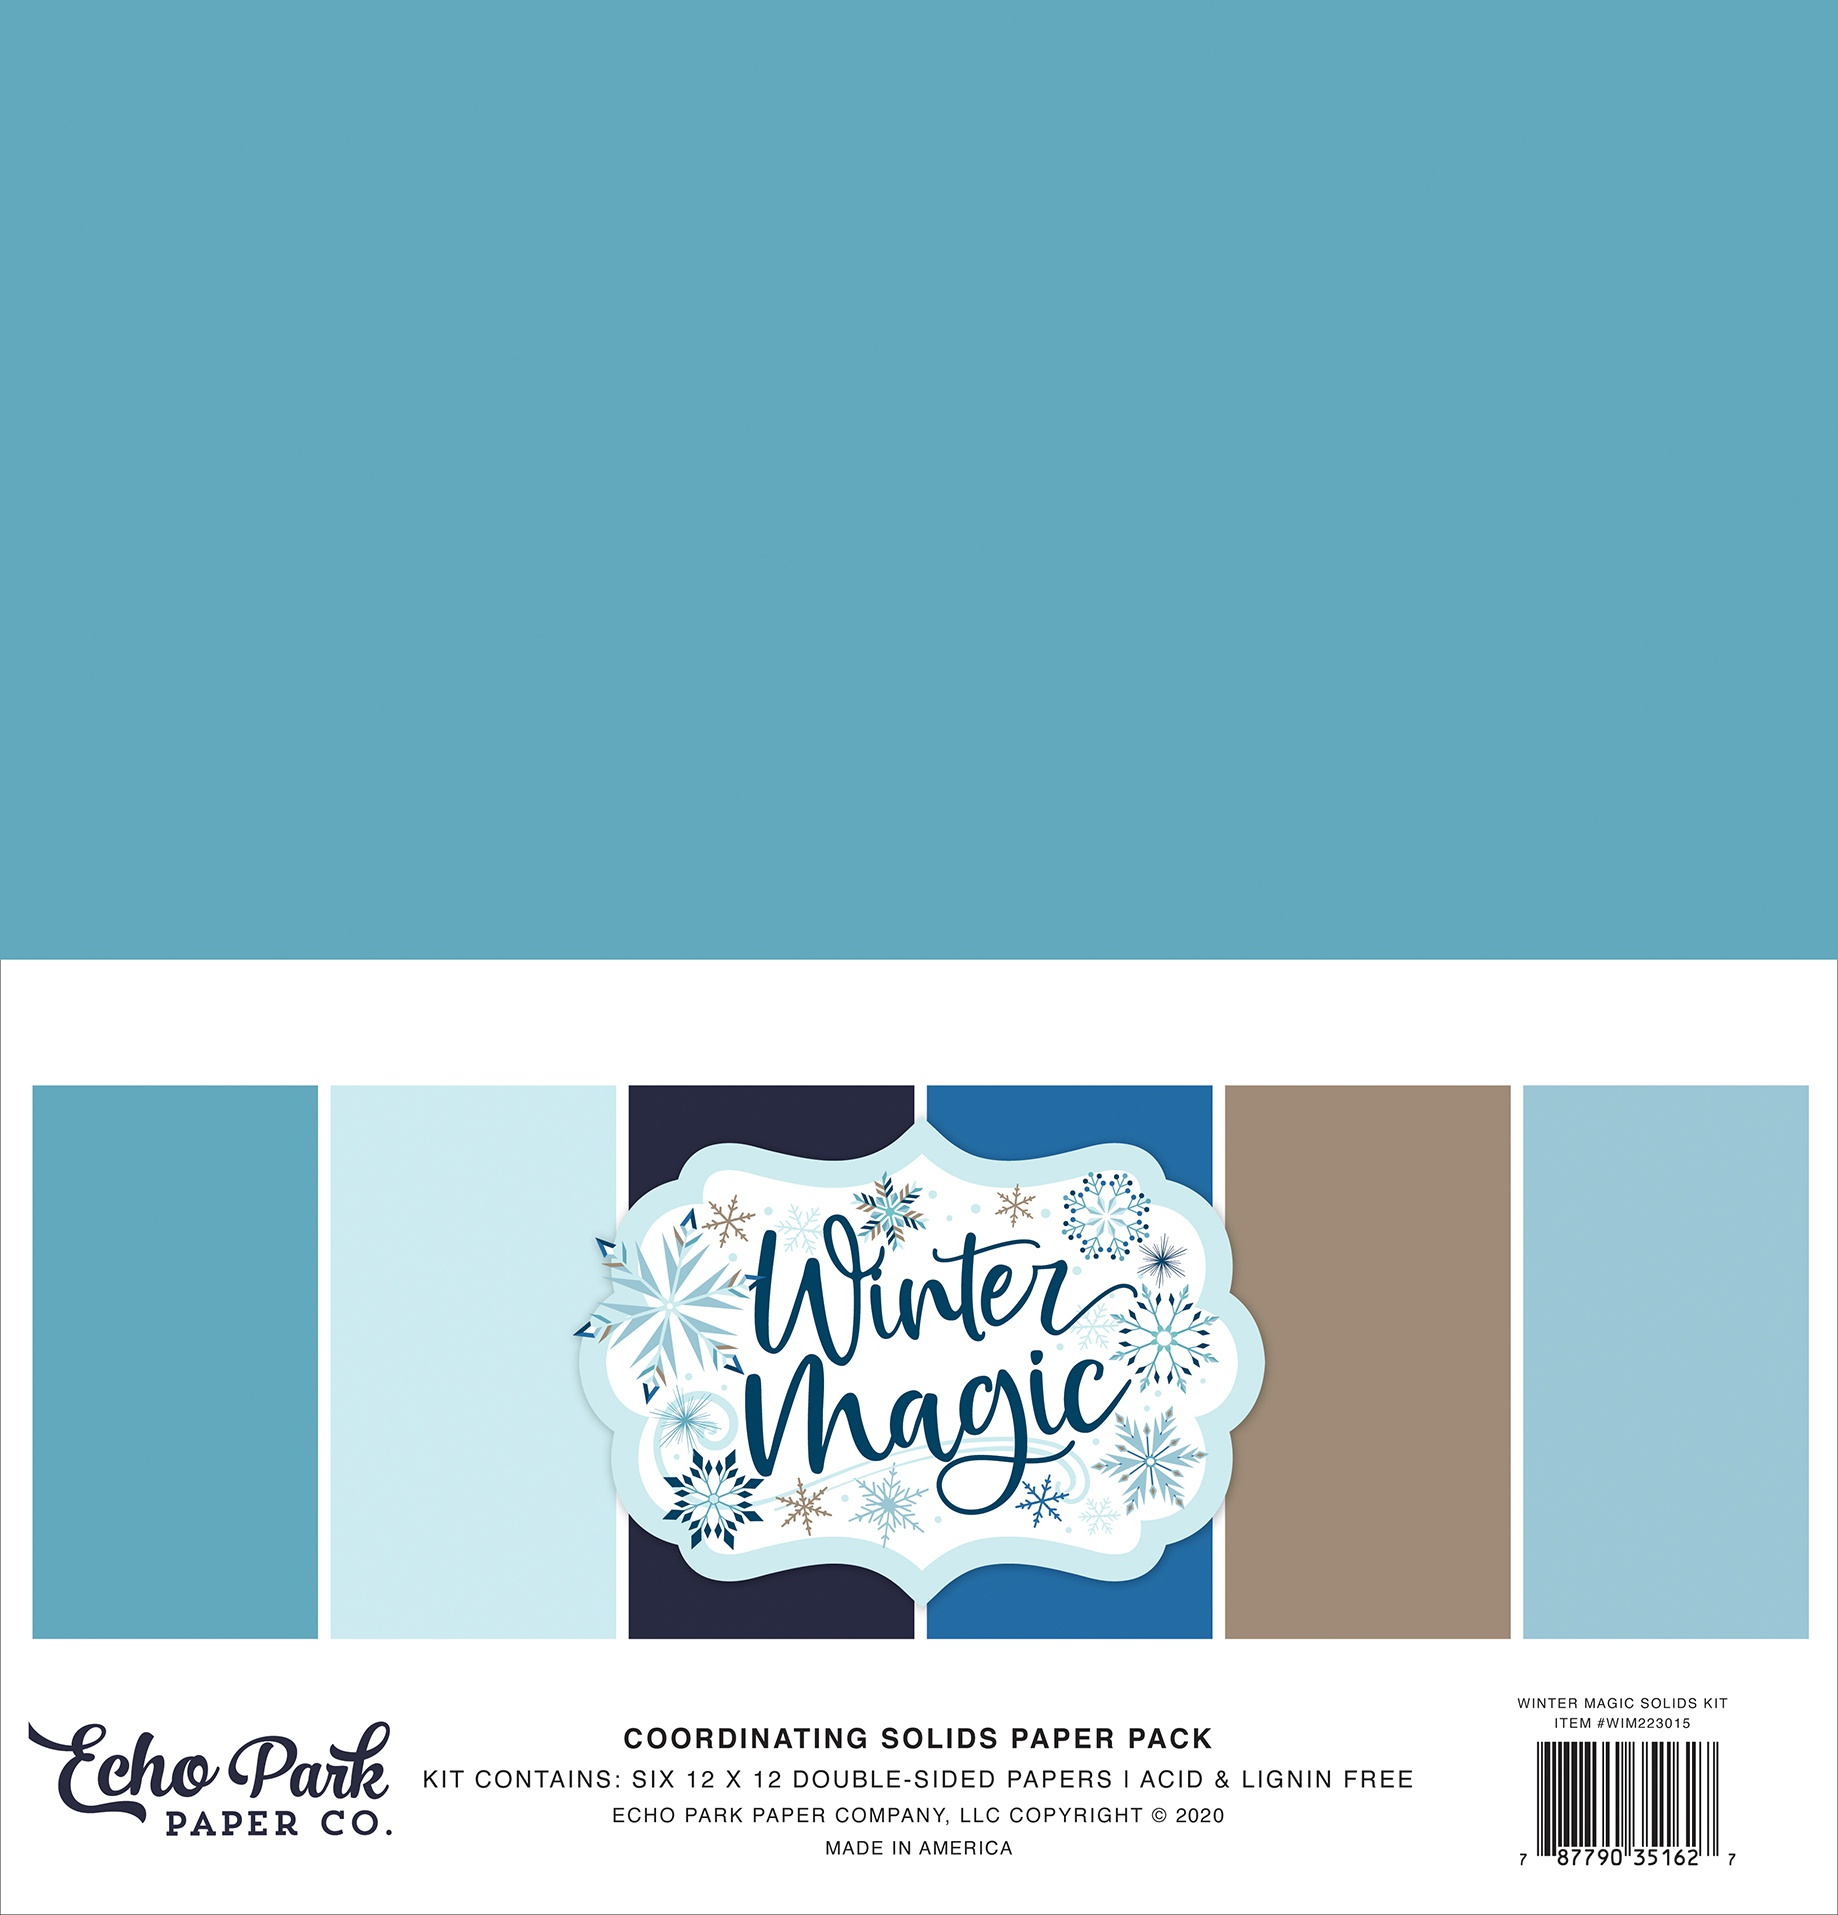 Echo Park Double-Sided Solid Cardstock 12X12 6/Pkg-Winter Magic, 6 Colors